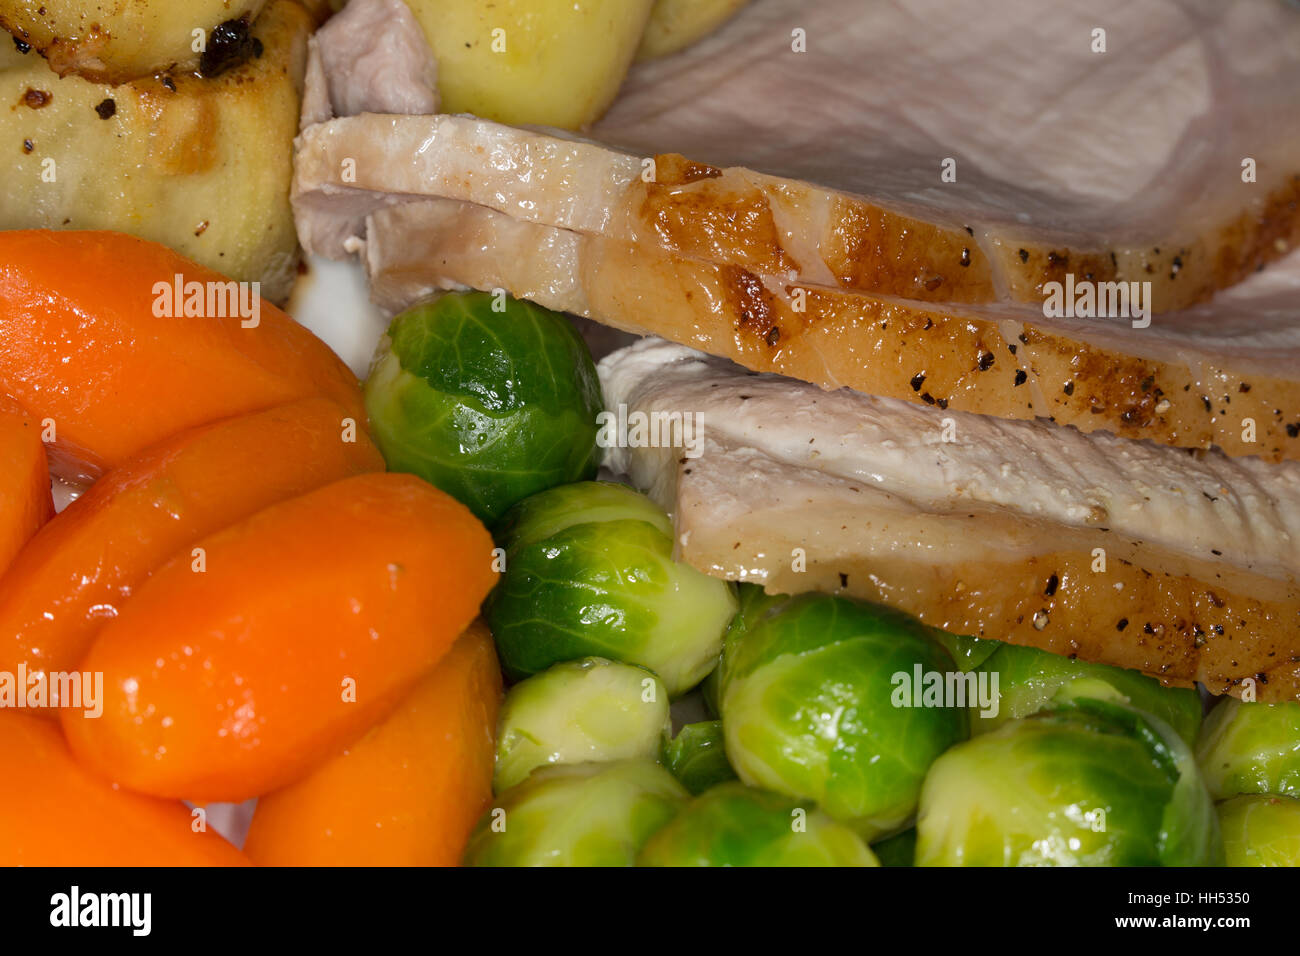 Cooked roast Pork joint with vegetables and potatoes, Stock Photo